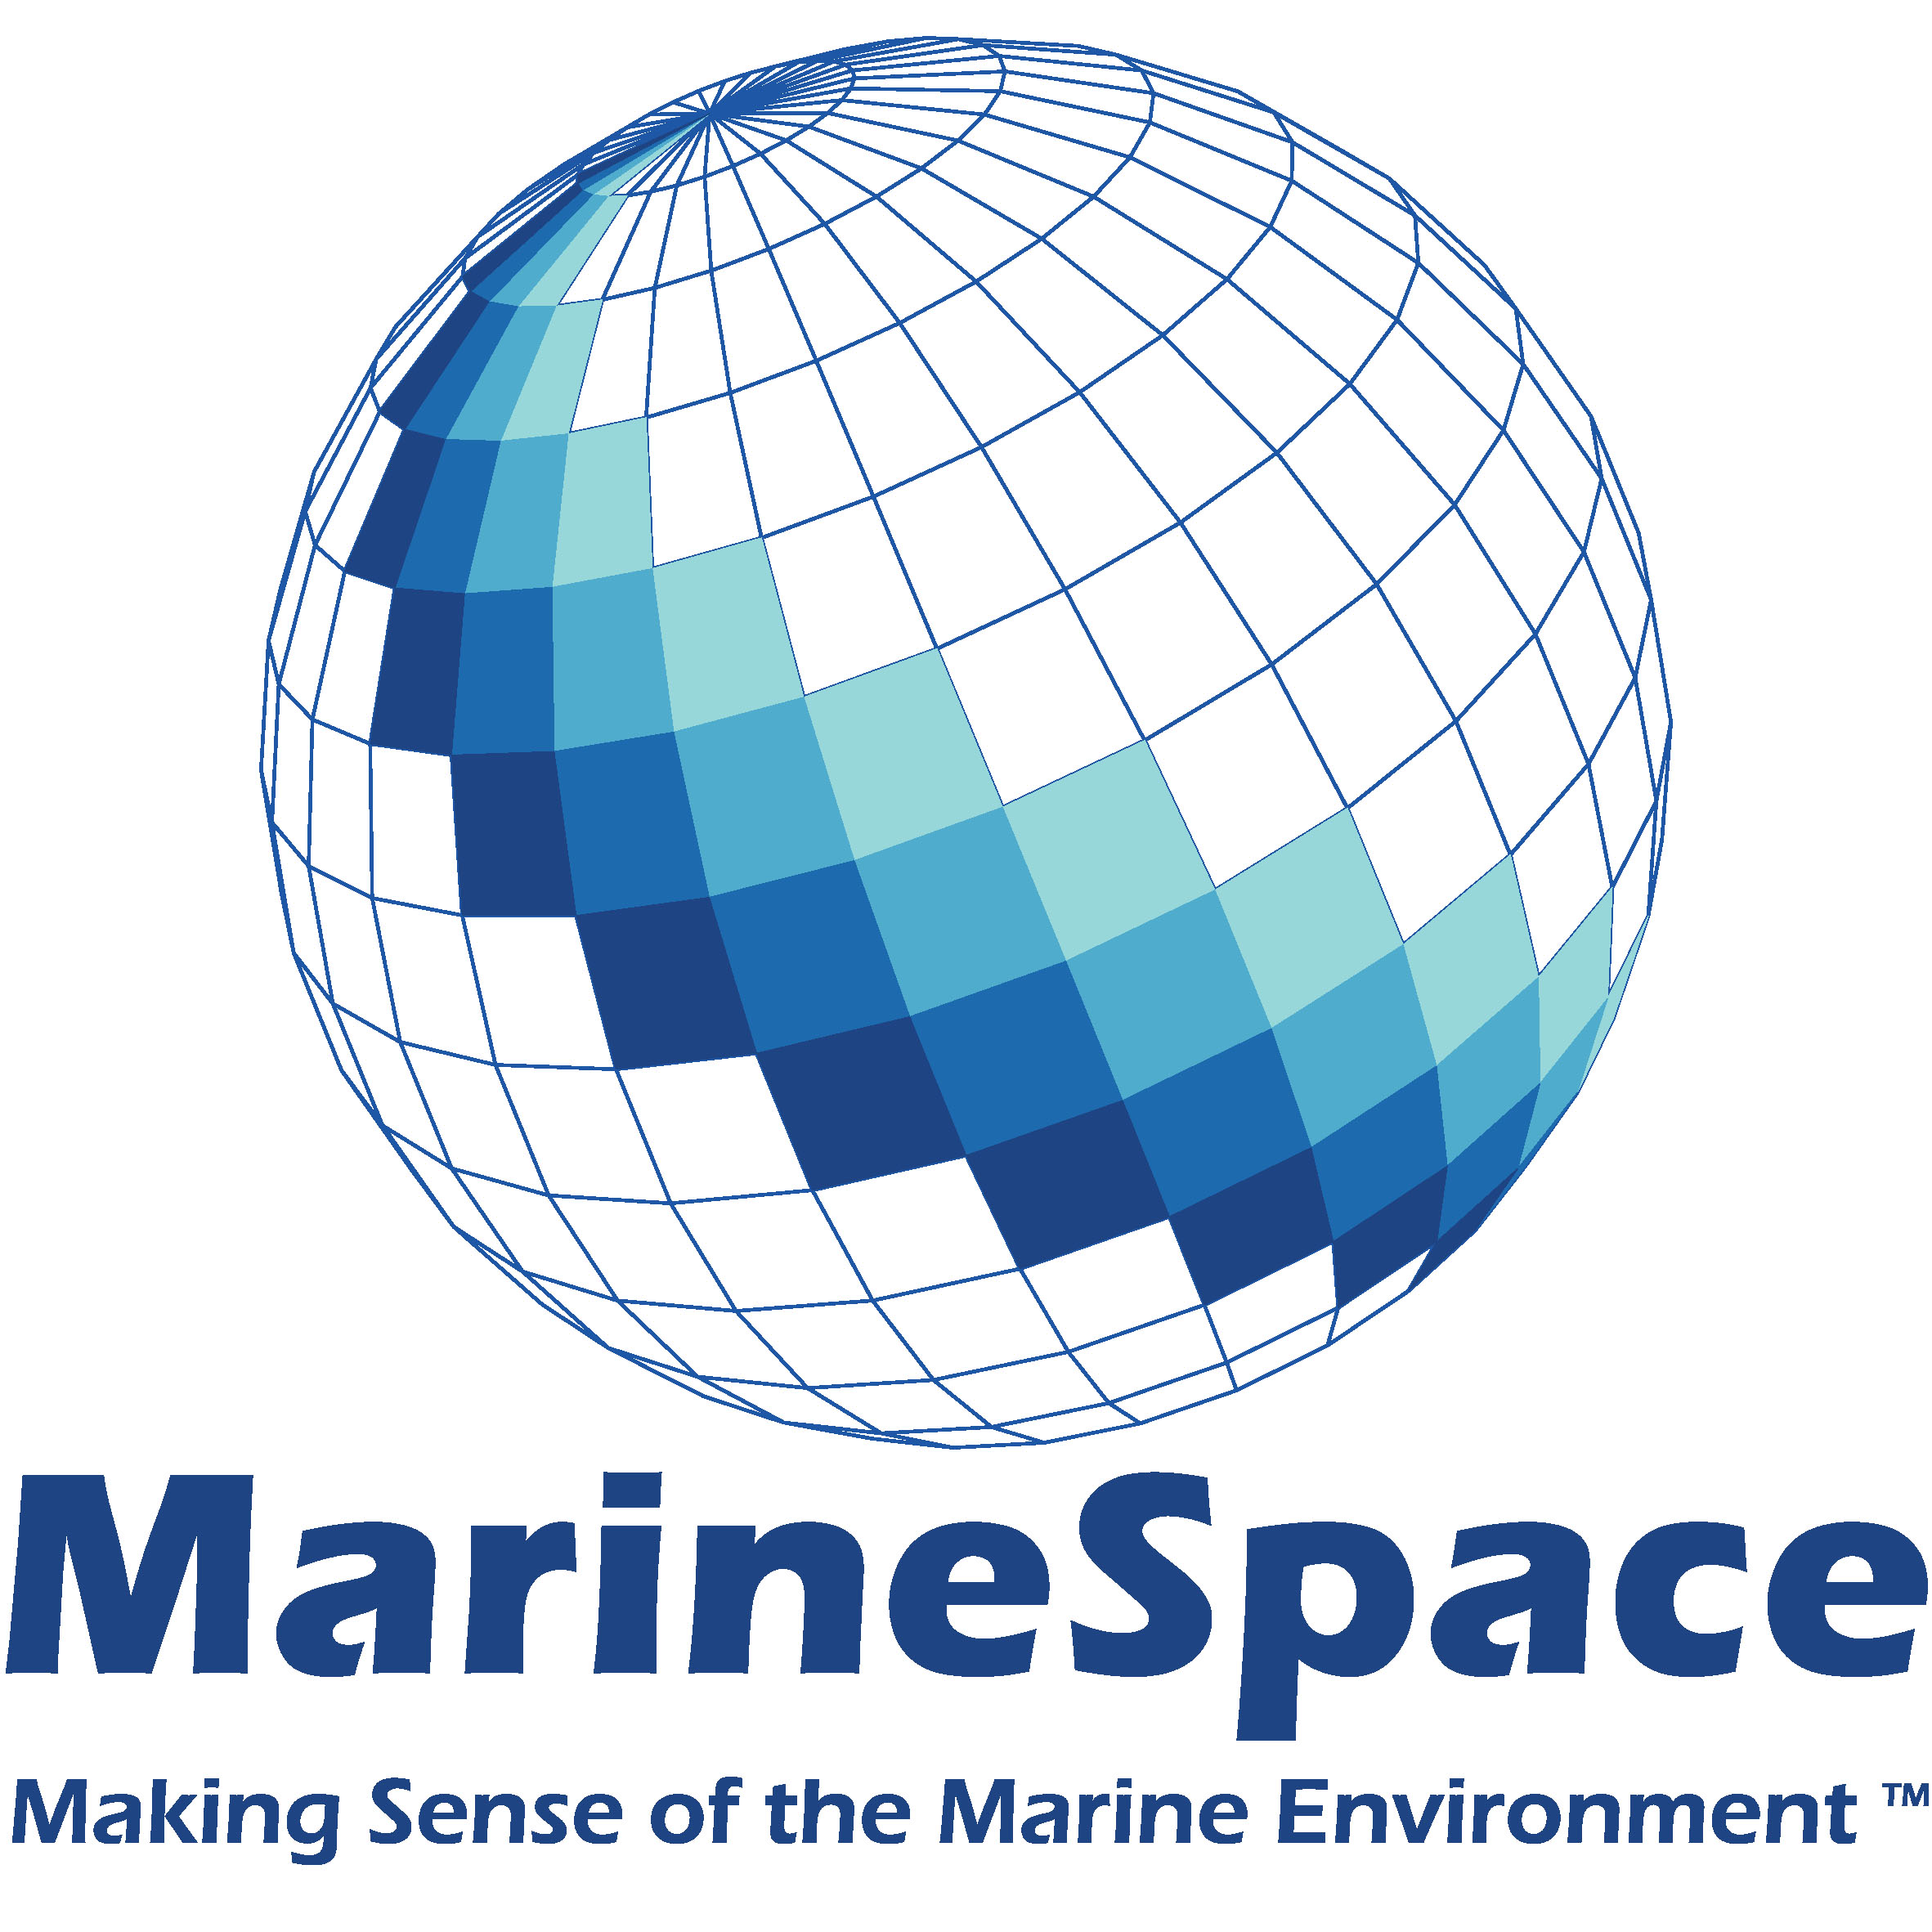 MarineSpace Ltd